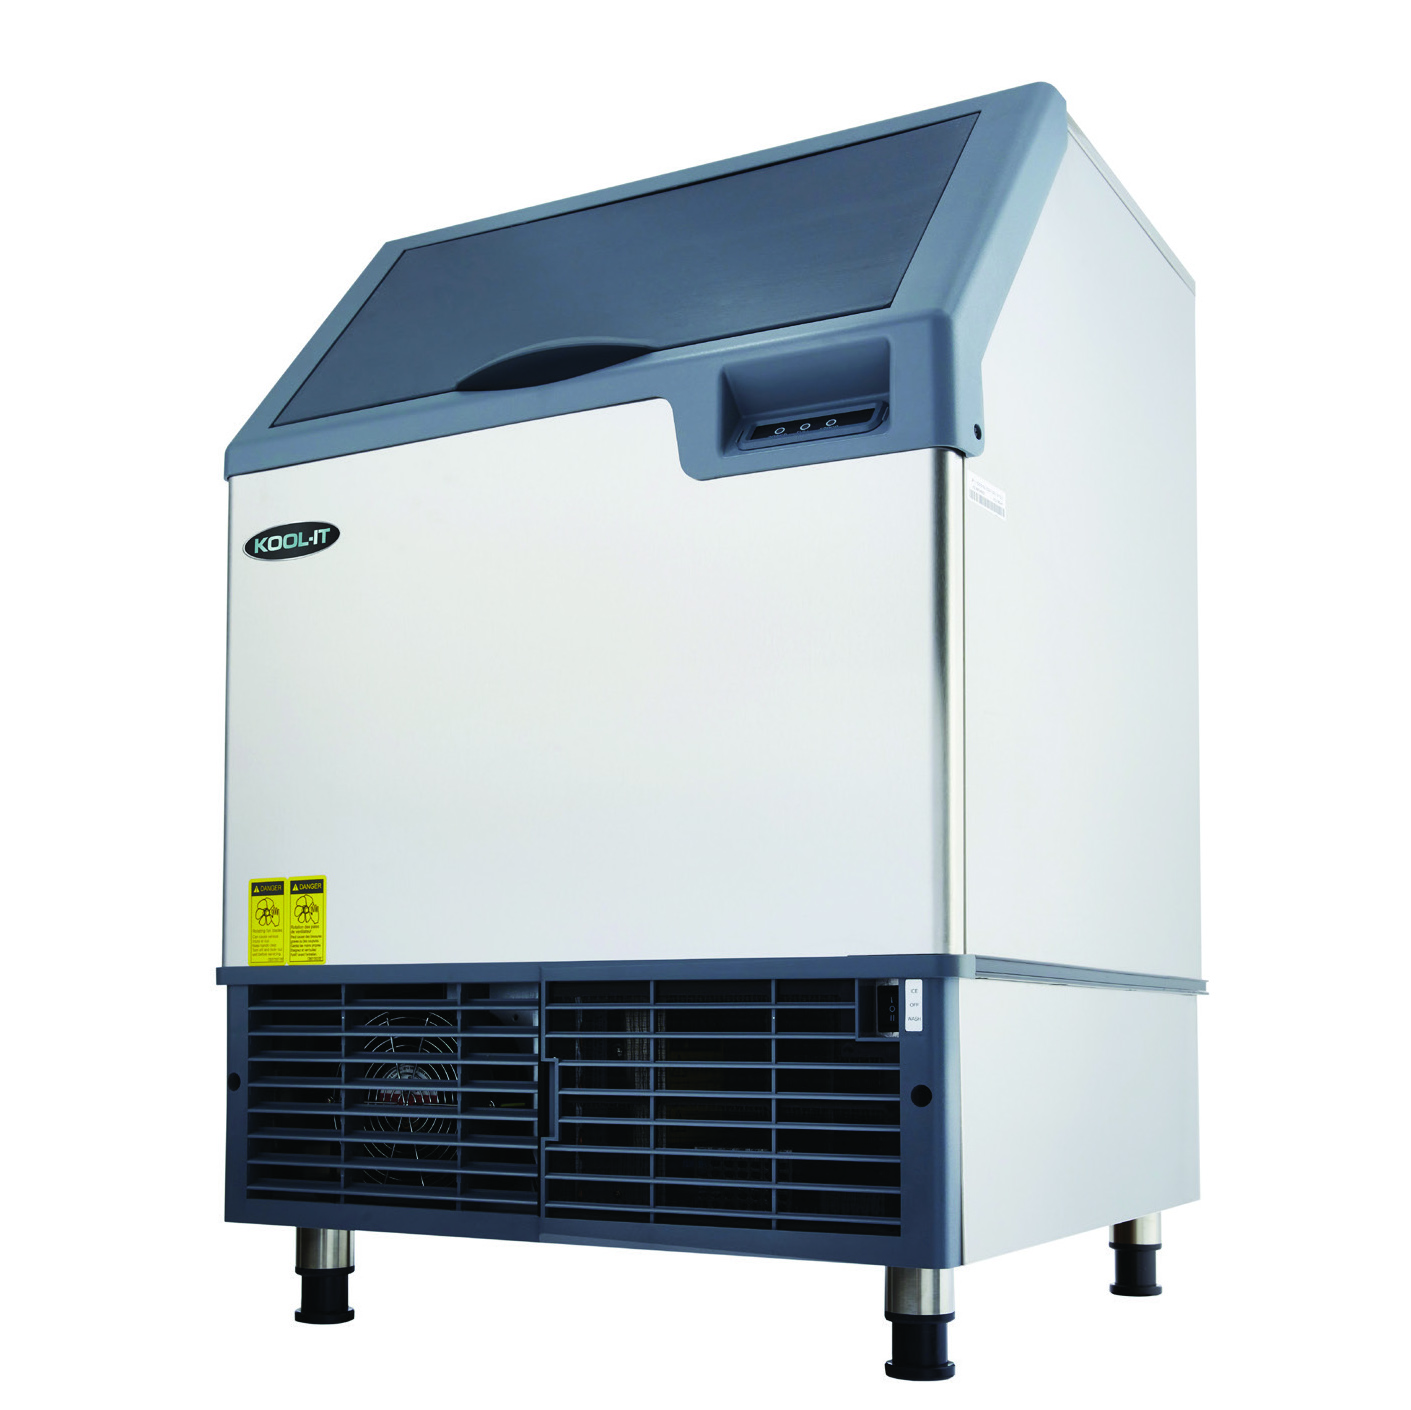 MVP KCU-250-AH ice maker with bin, cube-style